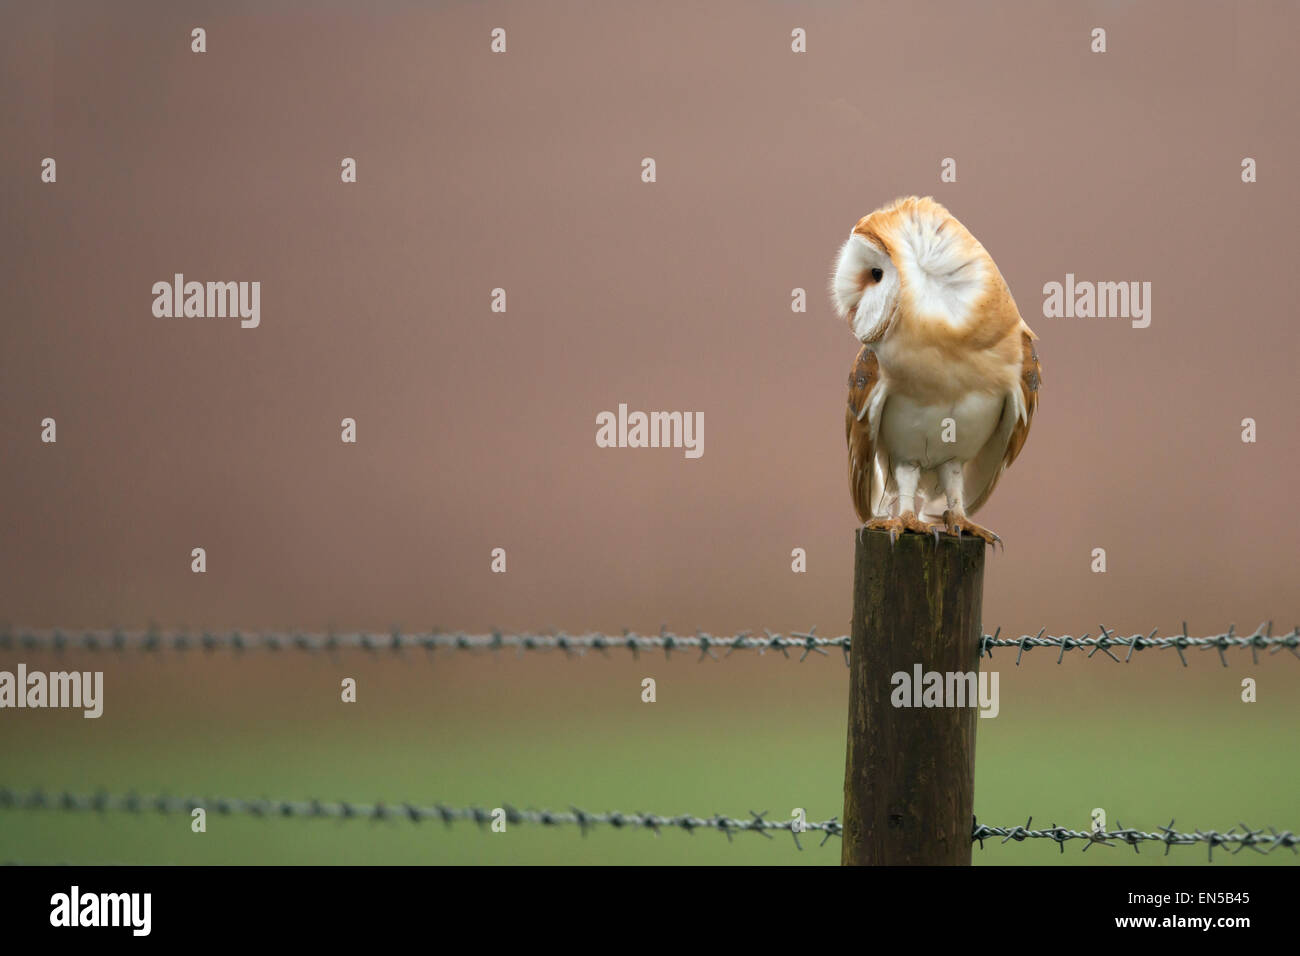 Ruffled Wild Barn Owl Tyto Alba perched on wooden fence post, Gloucestershire - Stock Image